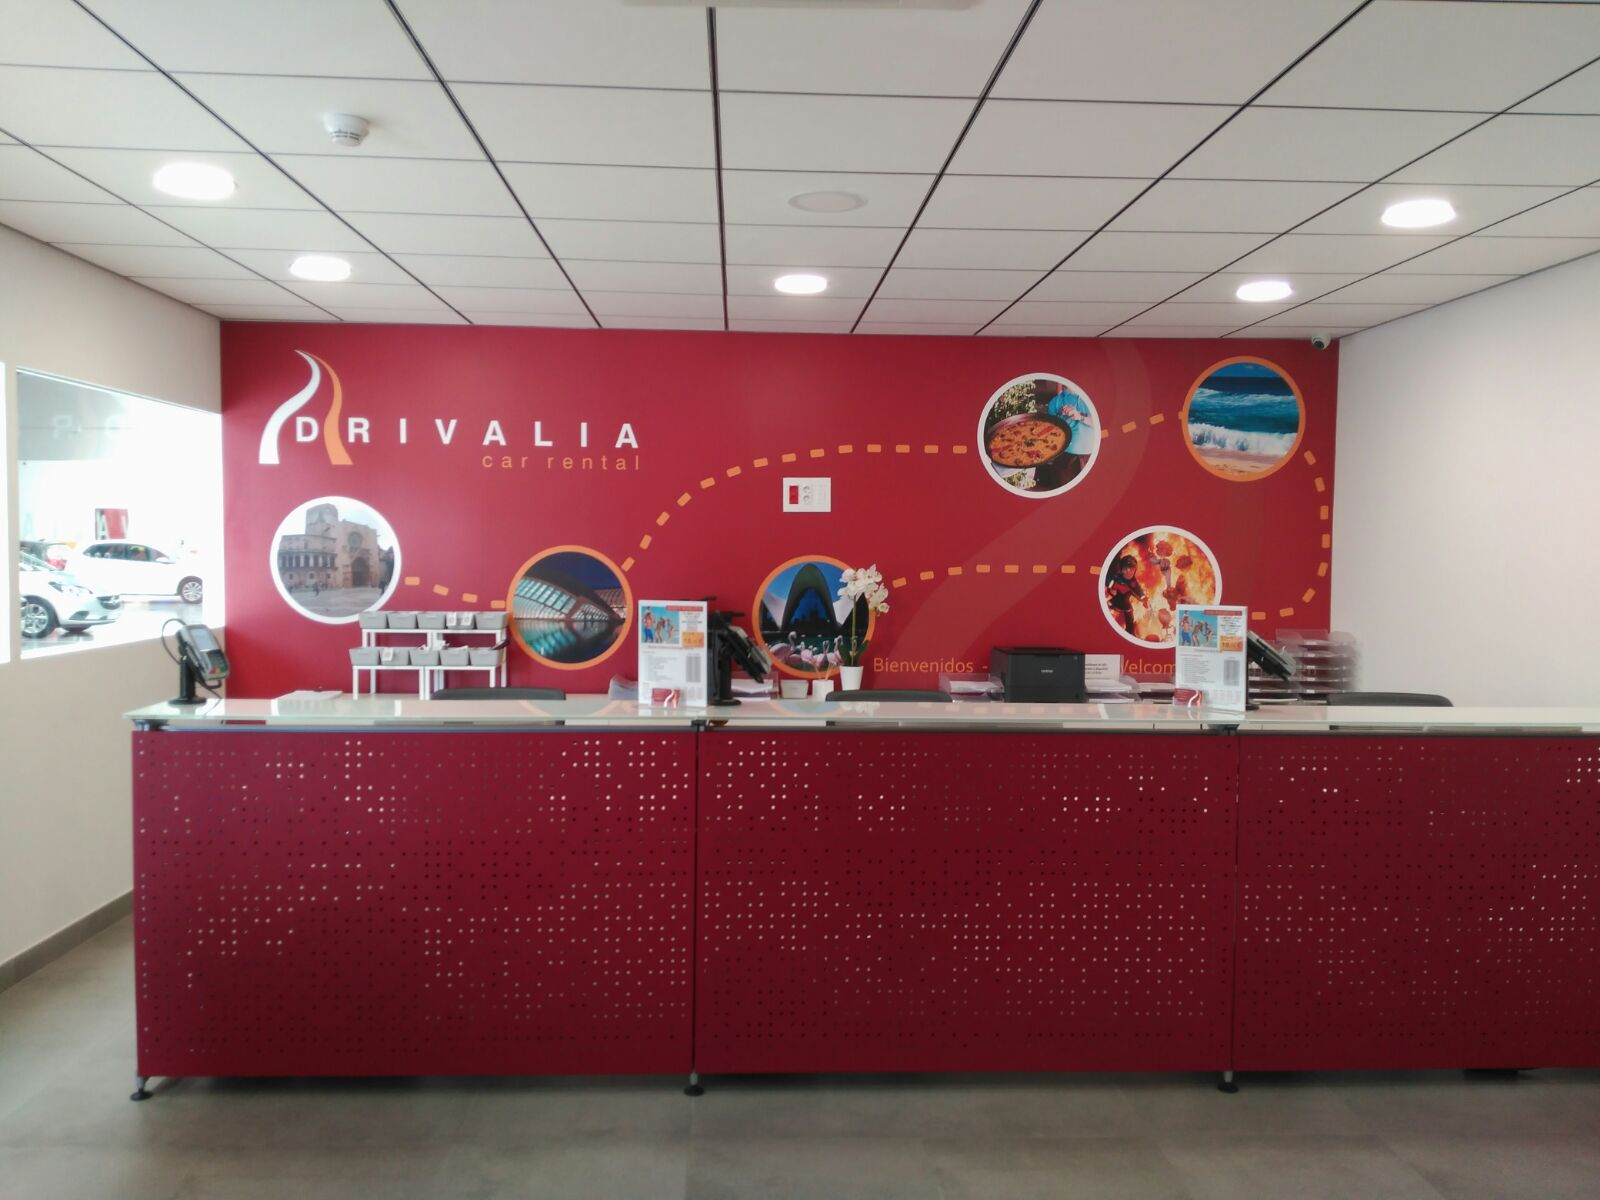 Drivalian reception where we welcome customers to their all-inclusive car hire at Valencia airport